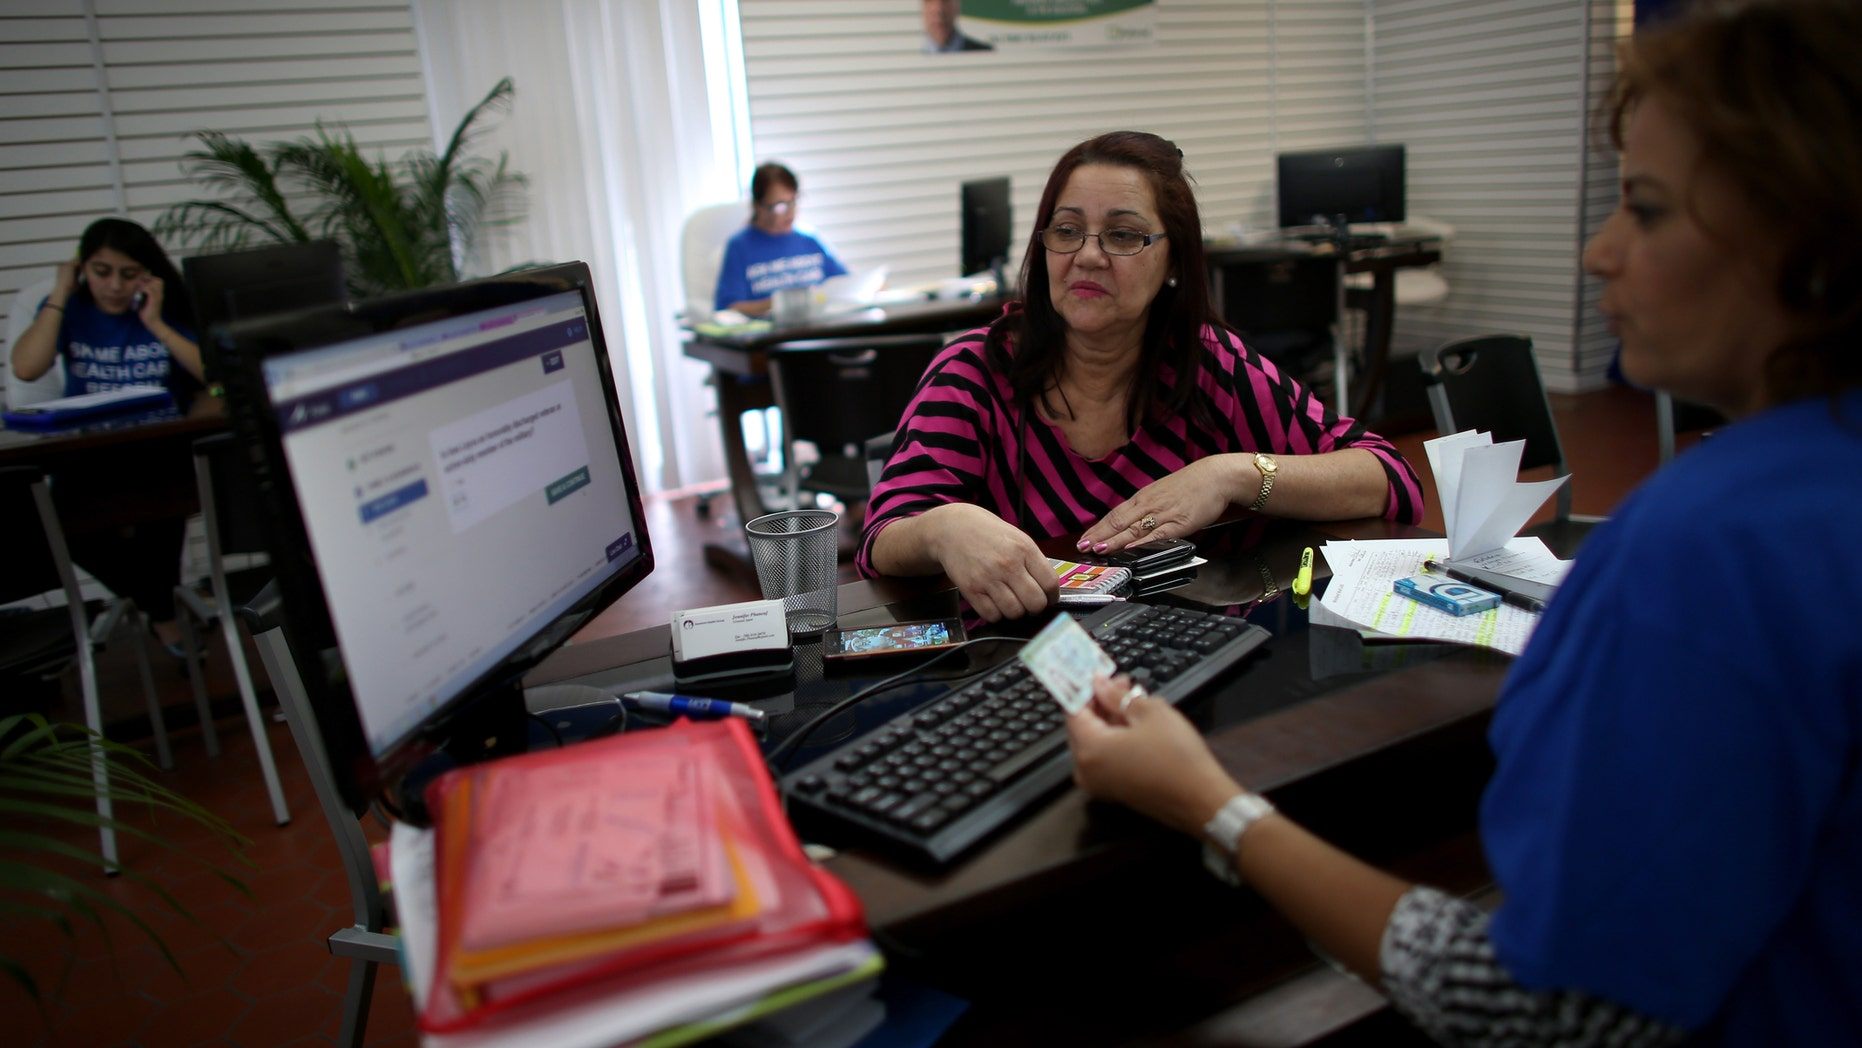 HIALEAH, FL - NOVEMBER 14:  Ines Leyva works with Marlene Portuondo, an insurance agent with Sunshine Life and Health Advisors, as she looks to purchase an insurance policy under the Affordable Care Act at the store setup in the Westland Mall on November 14, 2013 in Hialeah, Florida. As the insurance agents continue to help people purchase and understand the policies offered under the Affordable Care Act, U.S. President Barack Obama announced that Americans who have had their health insurance plans canceled because of the Affordable Care Act can keep those plans for another year if they wish to.  (Photo by Joe Raedle/Getty Images)